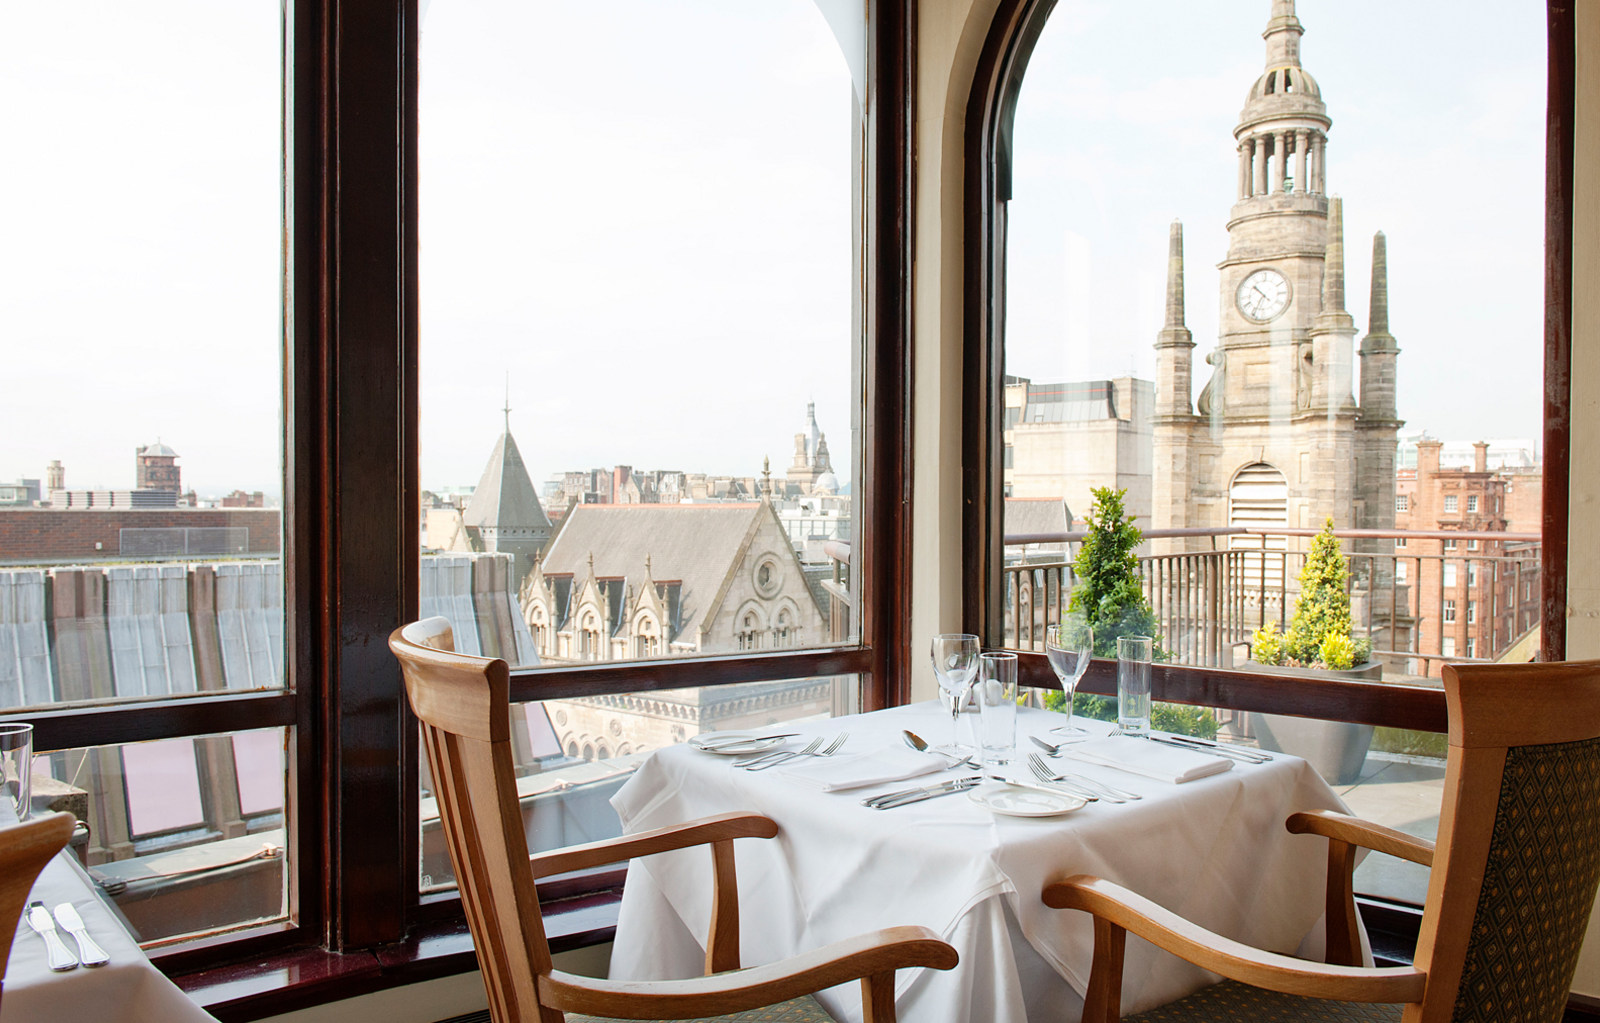 Windows Restaurant - Glasgow